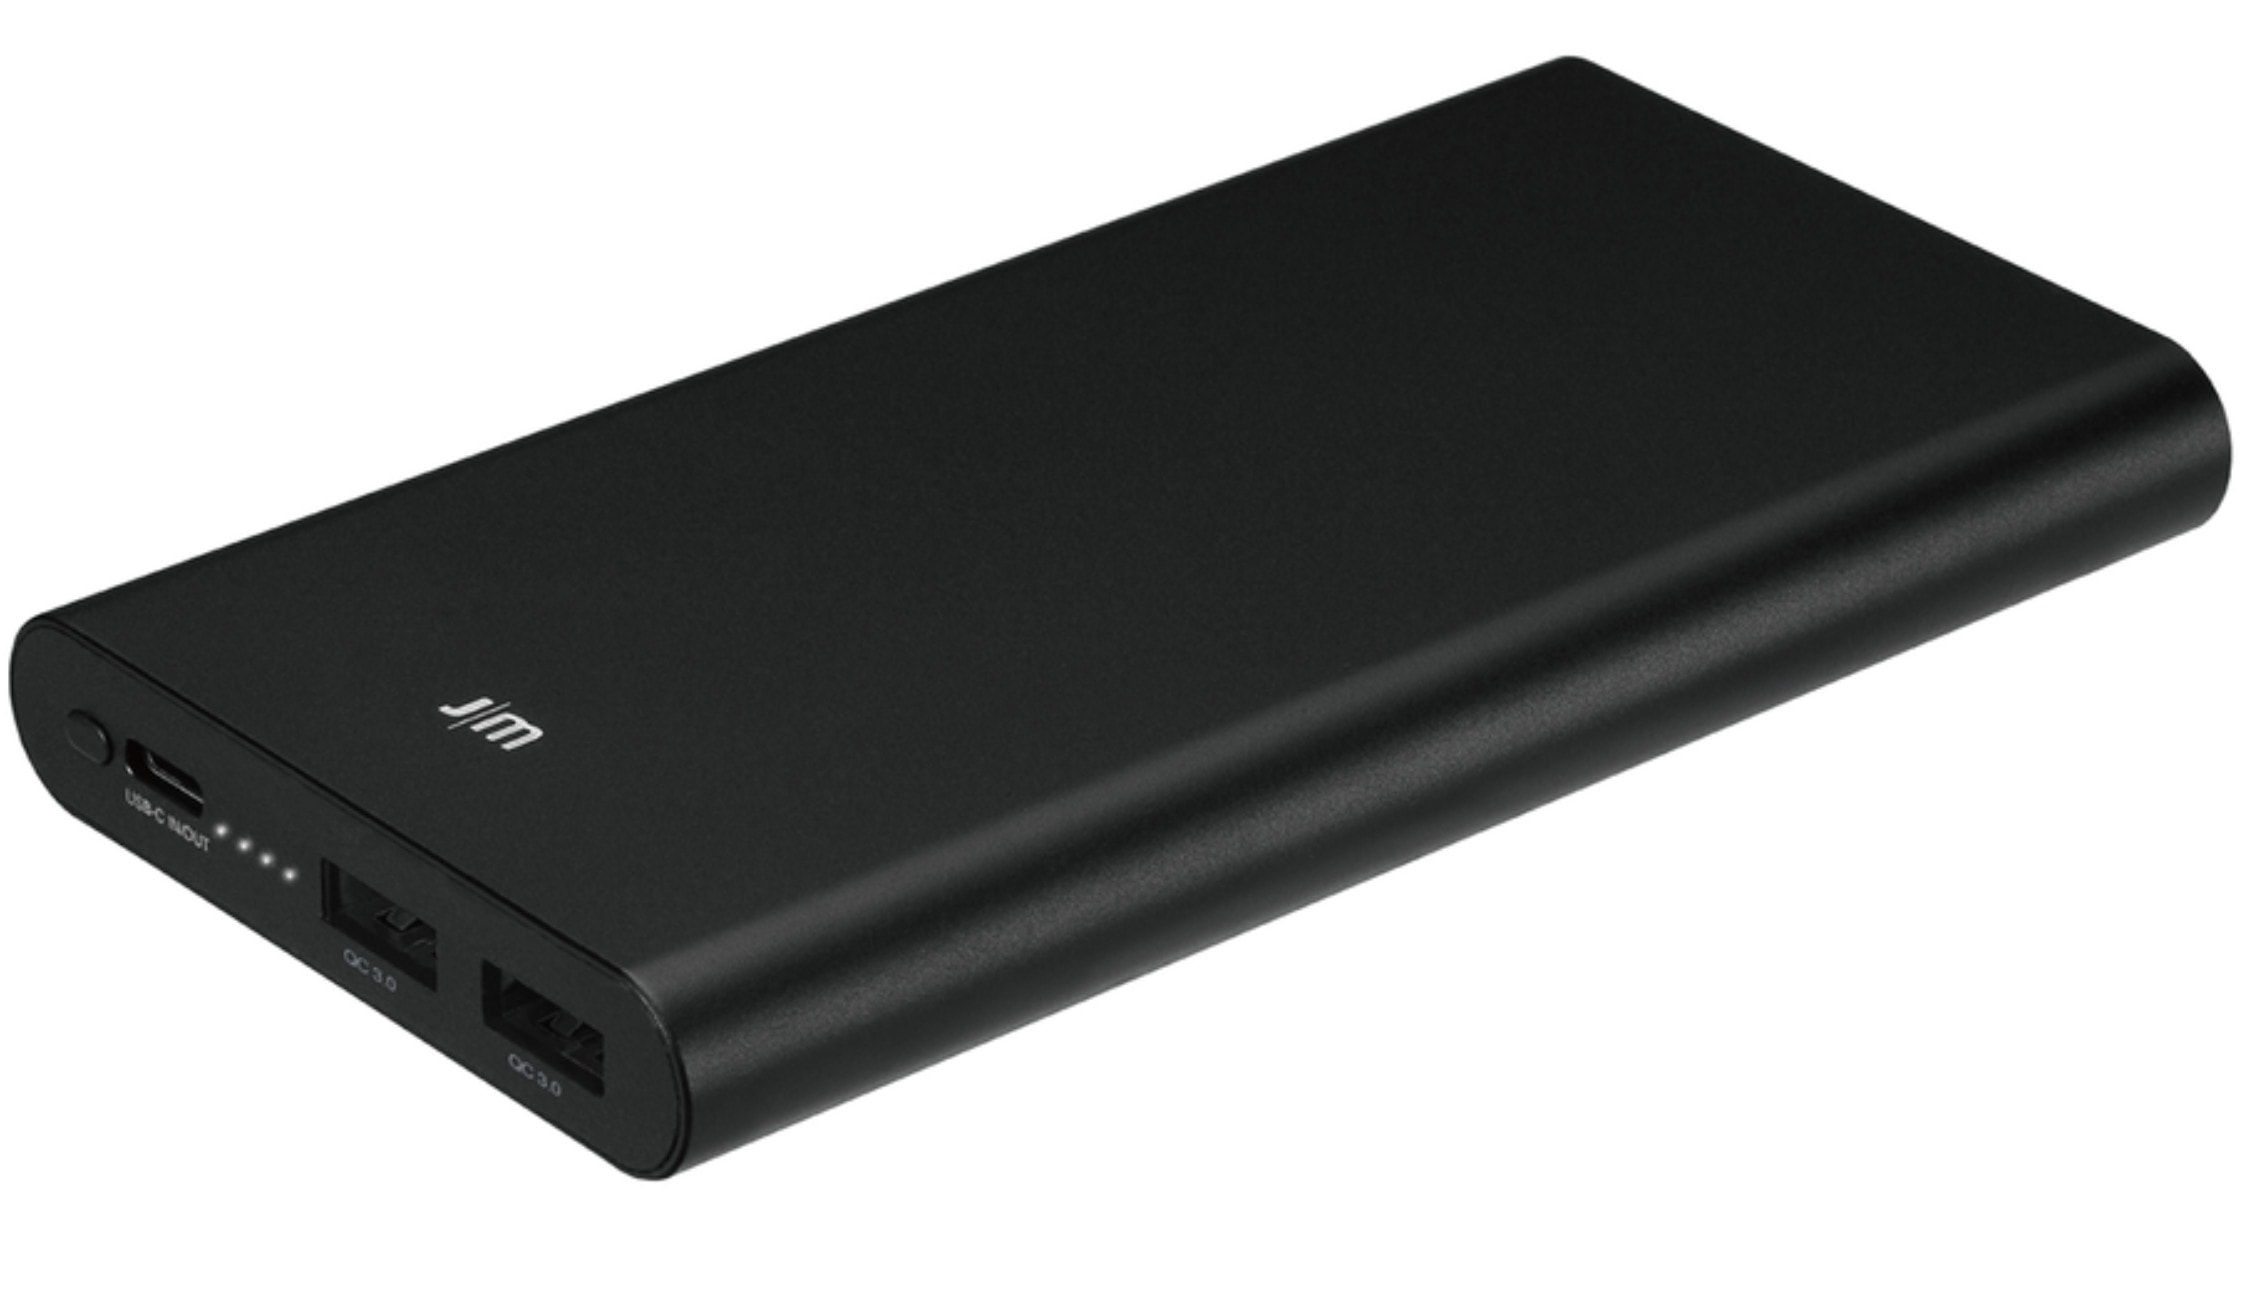 Never run out of power again with the mighty Gum Slim portable charger.